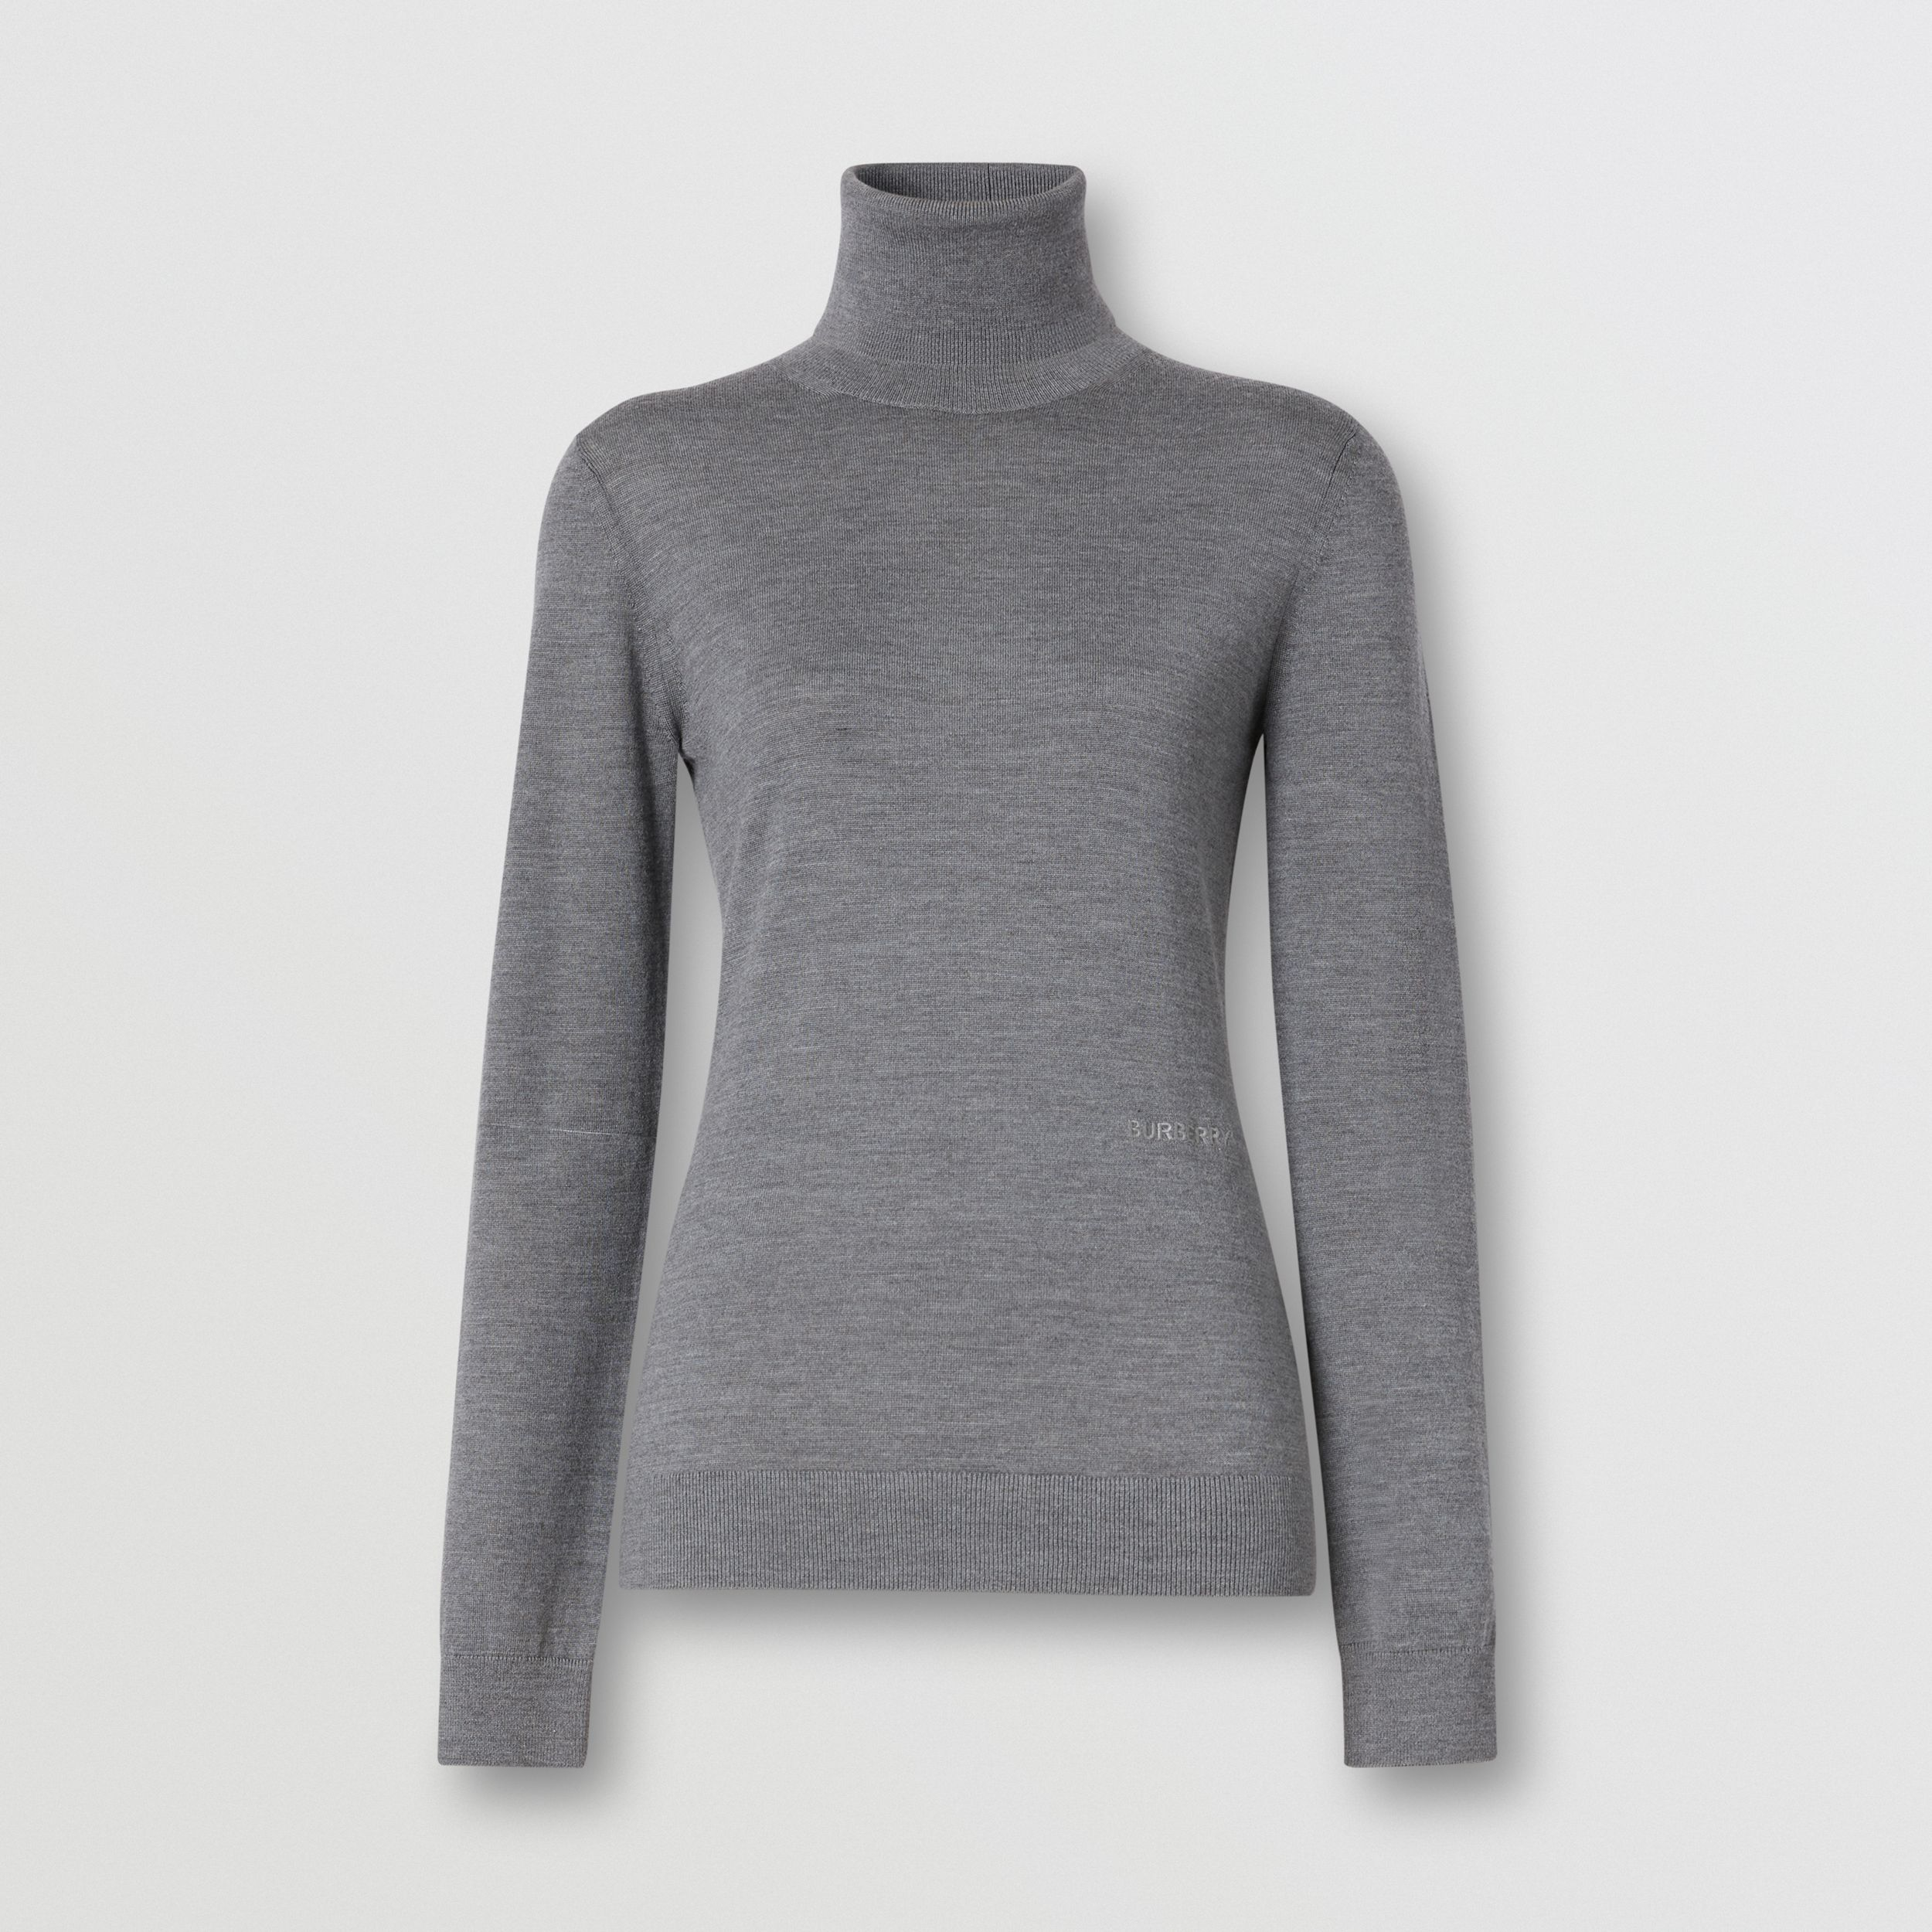 Two-tone Merino Wool Silk Roll-neck Sweater in Grey Melange - Women | Burberry - 4